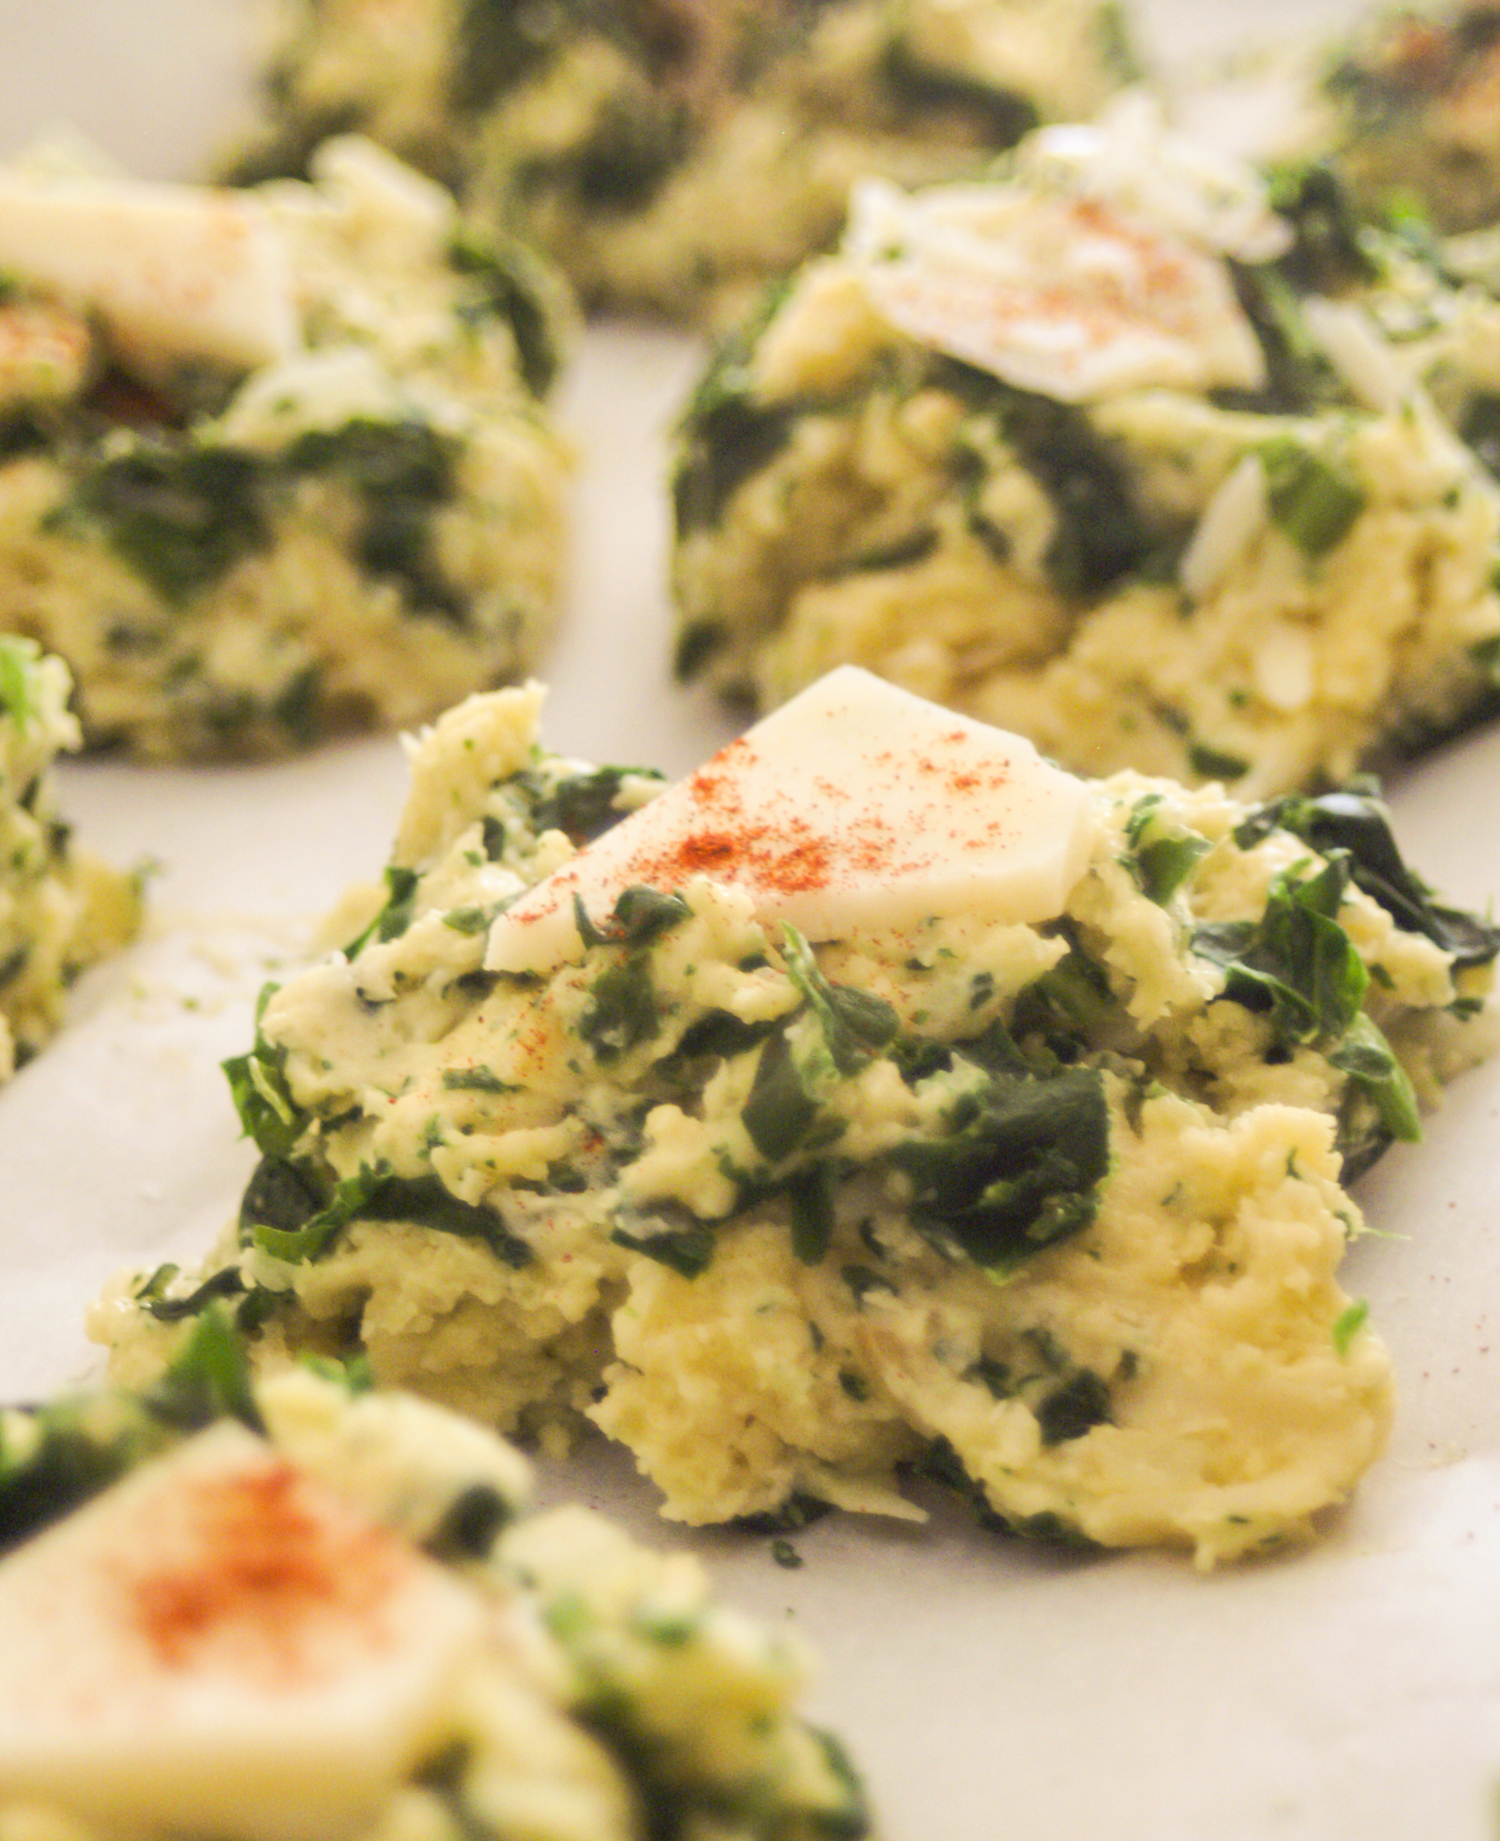 Gluten Free Parmesan and Spinach Biscuits